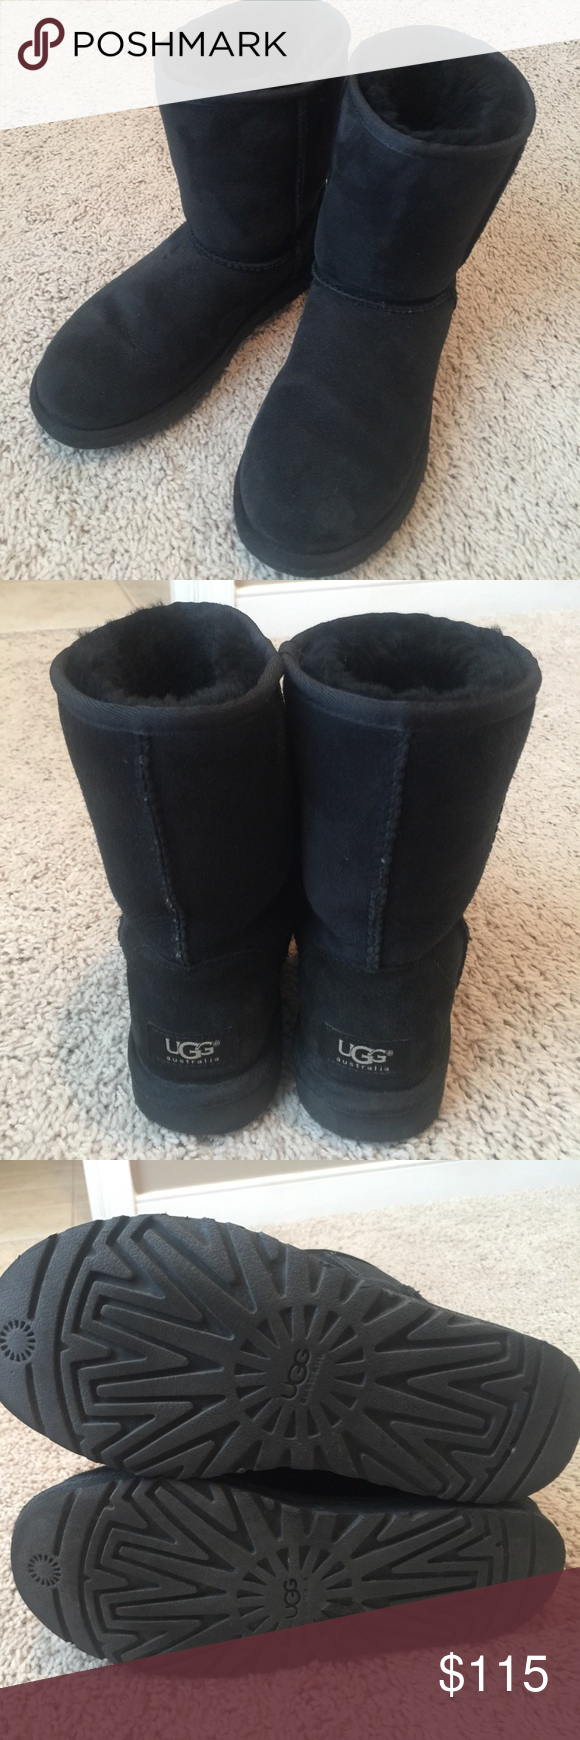 Authentic Classic black Ugg Boots, sz US 5 EU 36 Authentic Classic black suede Ugg short Boots purchased at Nordstrom Big Girl/women's size US 5, EU 36 **fit my 12 year old daughter** Excellent condition UGG Shoes Winter & Rain Boots #uggbootsoutfitblackgirl